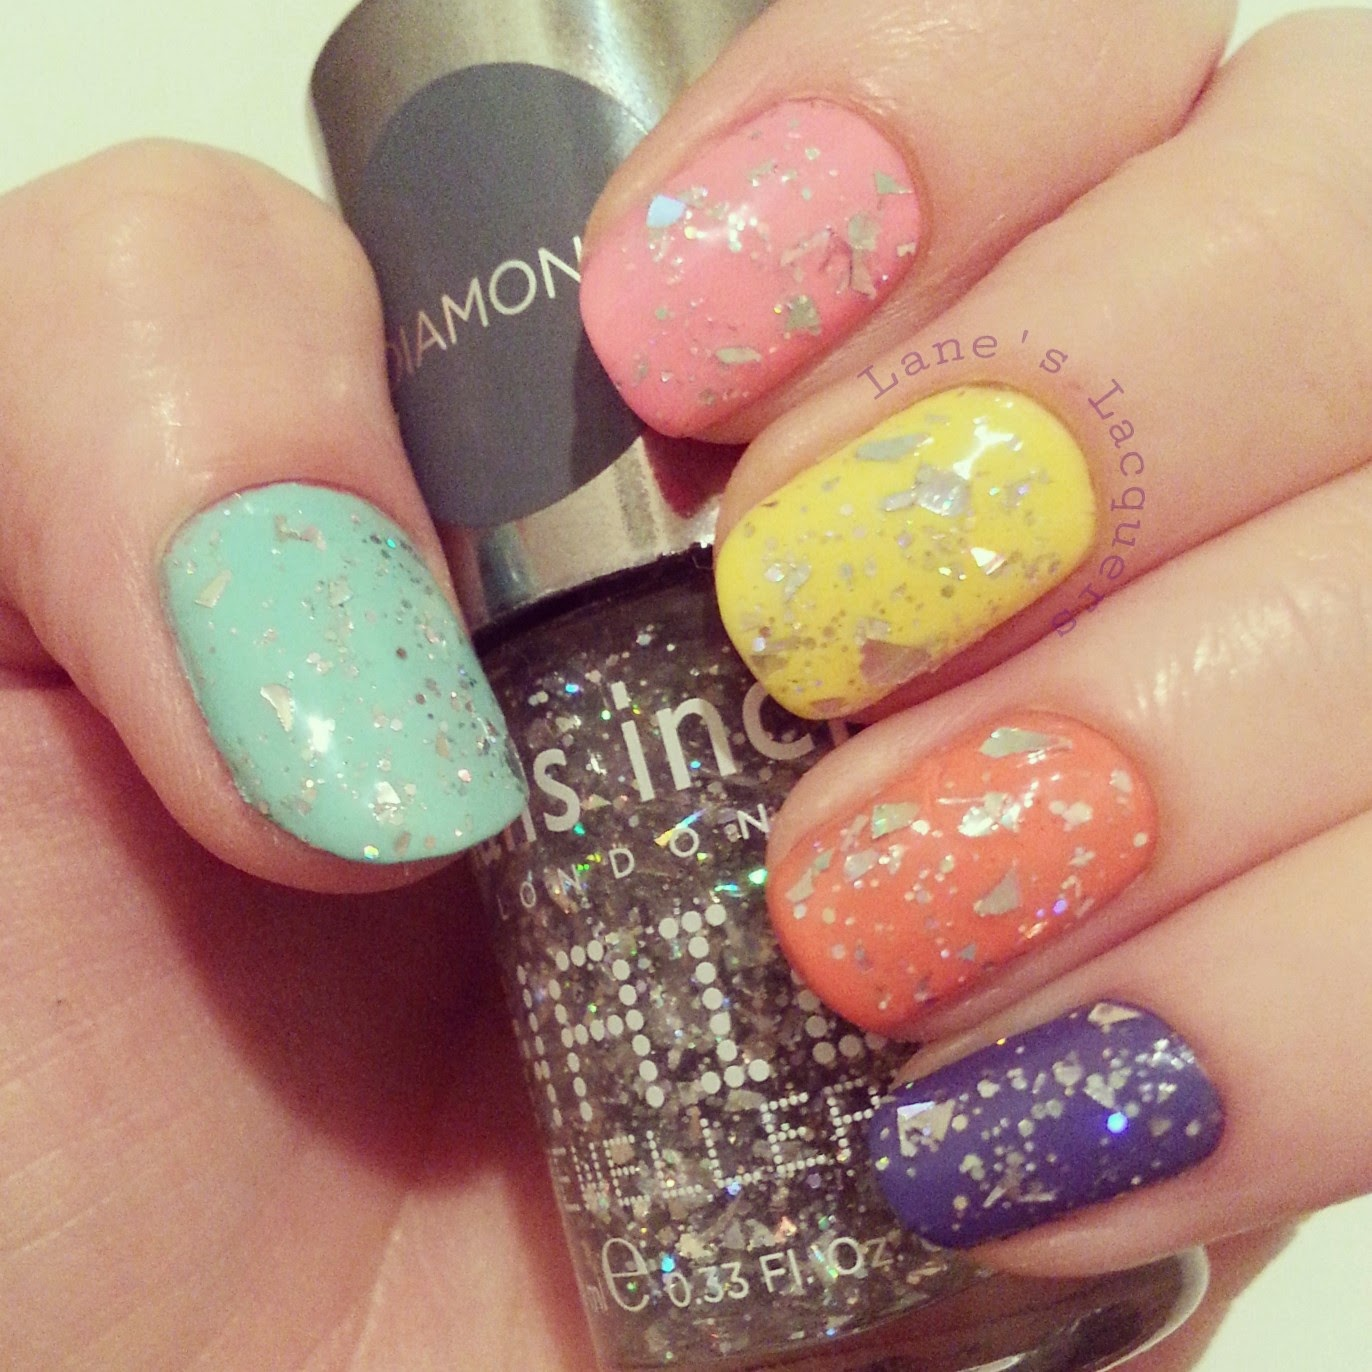 GOT-polish-challenge-nails-inc-pastels-manicure